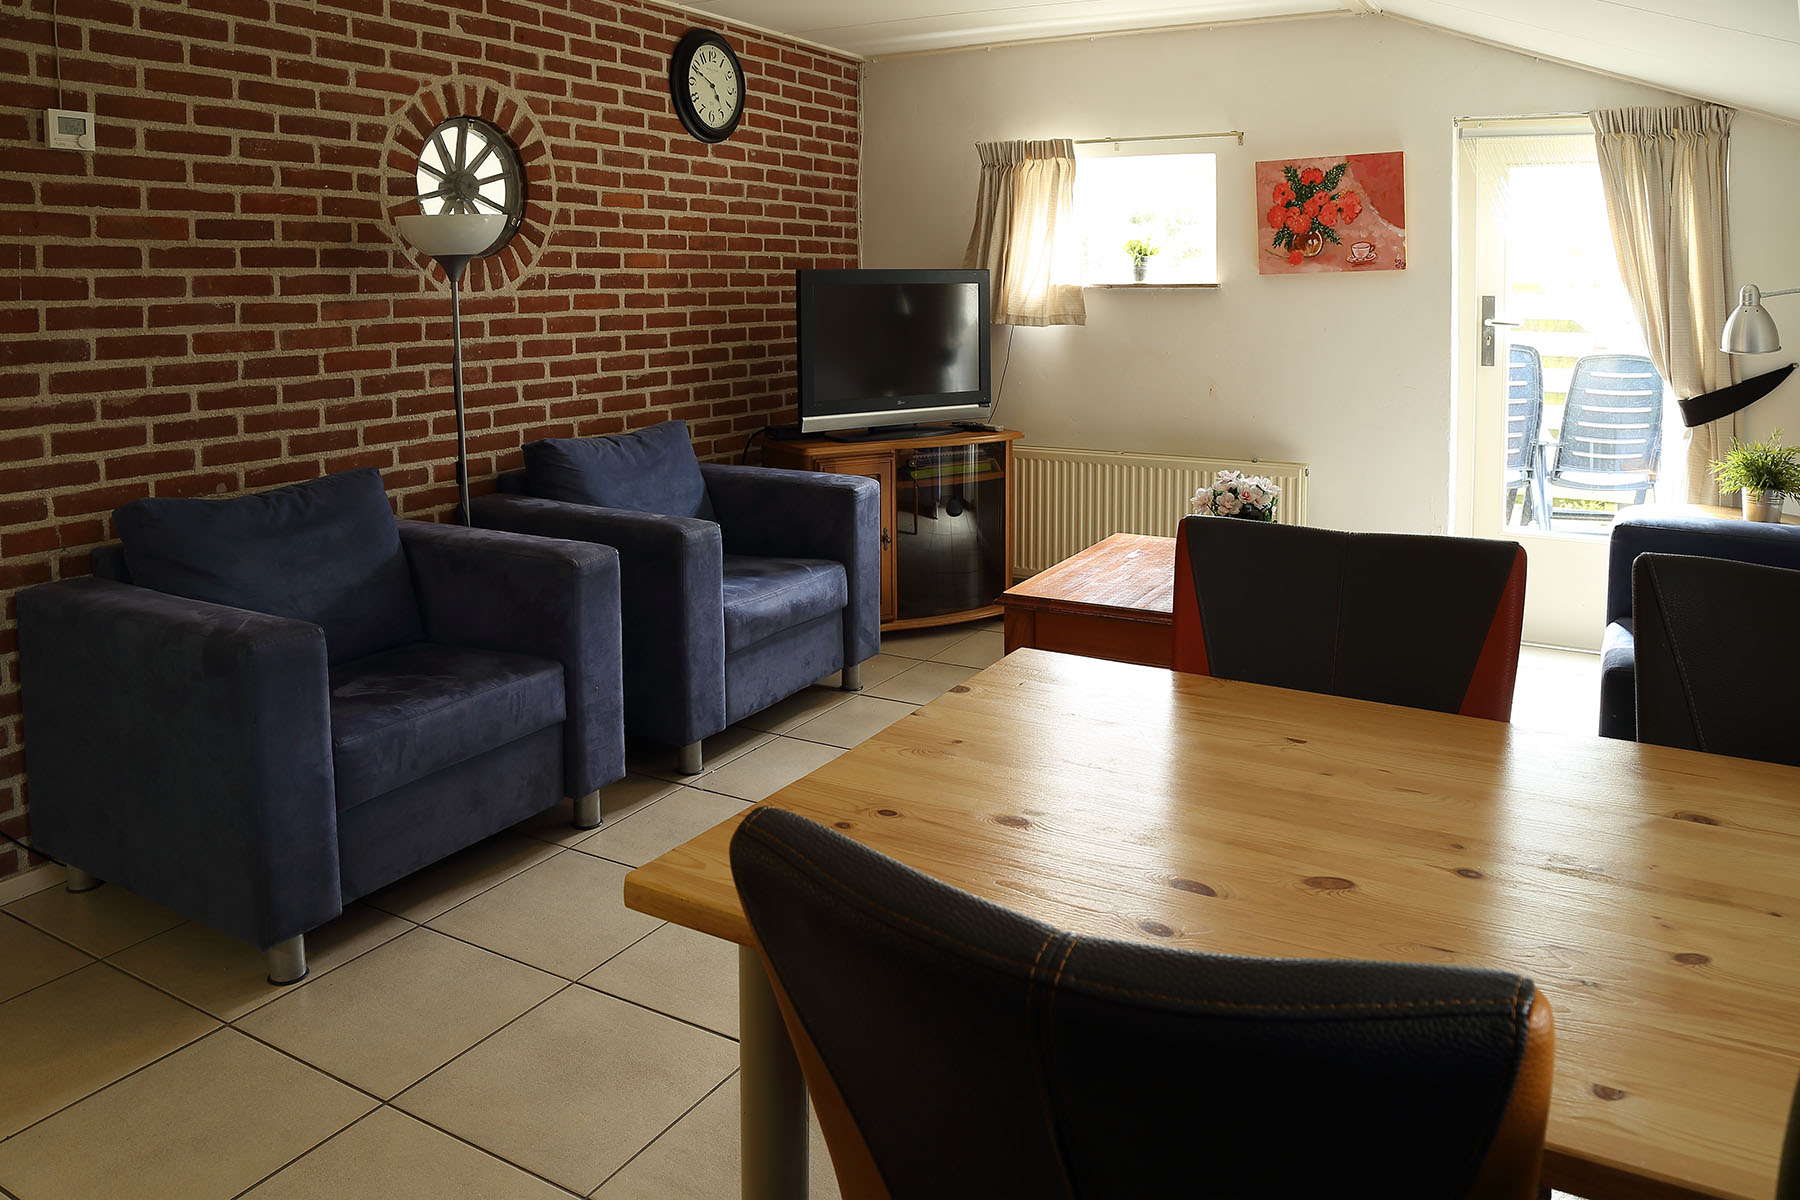 IMG_7690 appartement 1 zithoek